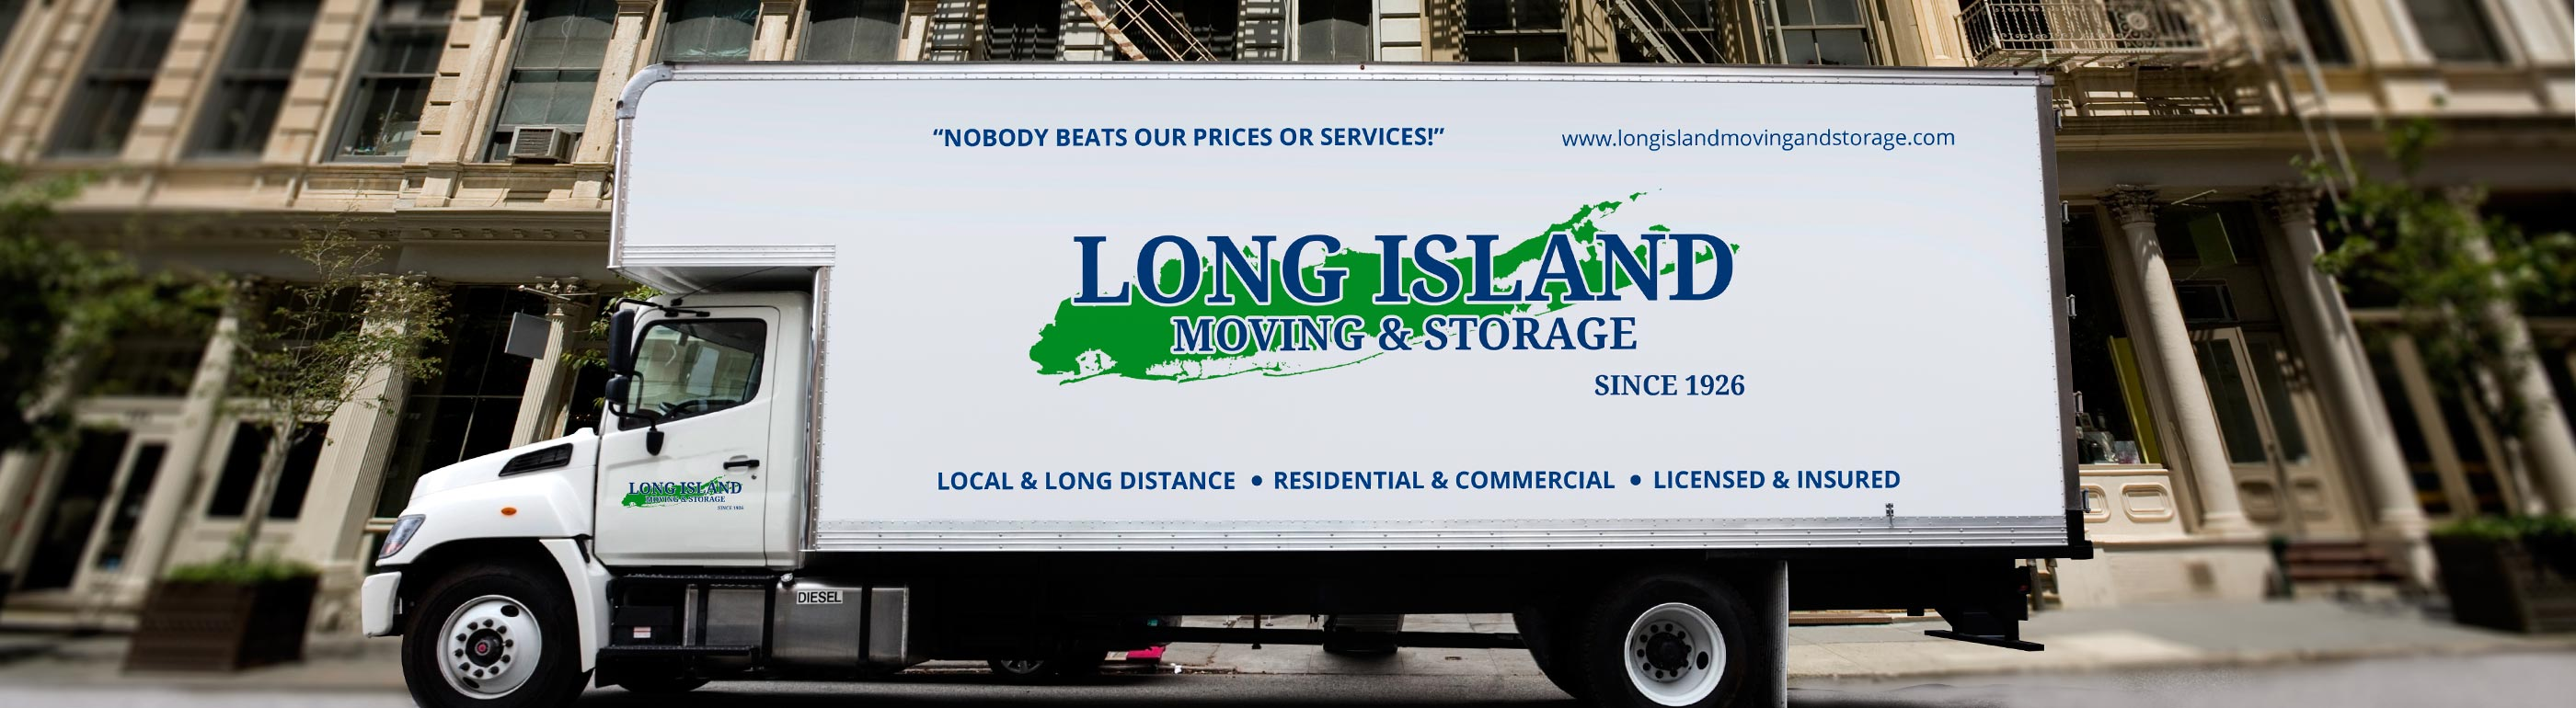 moving van outside business